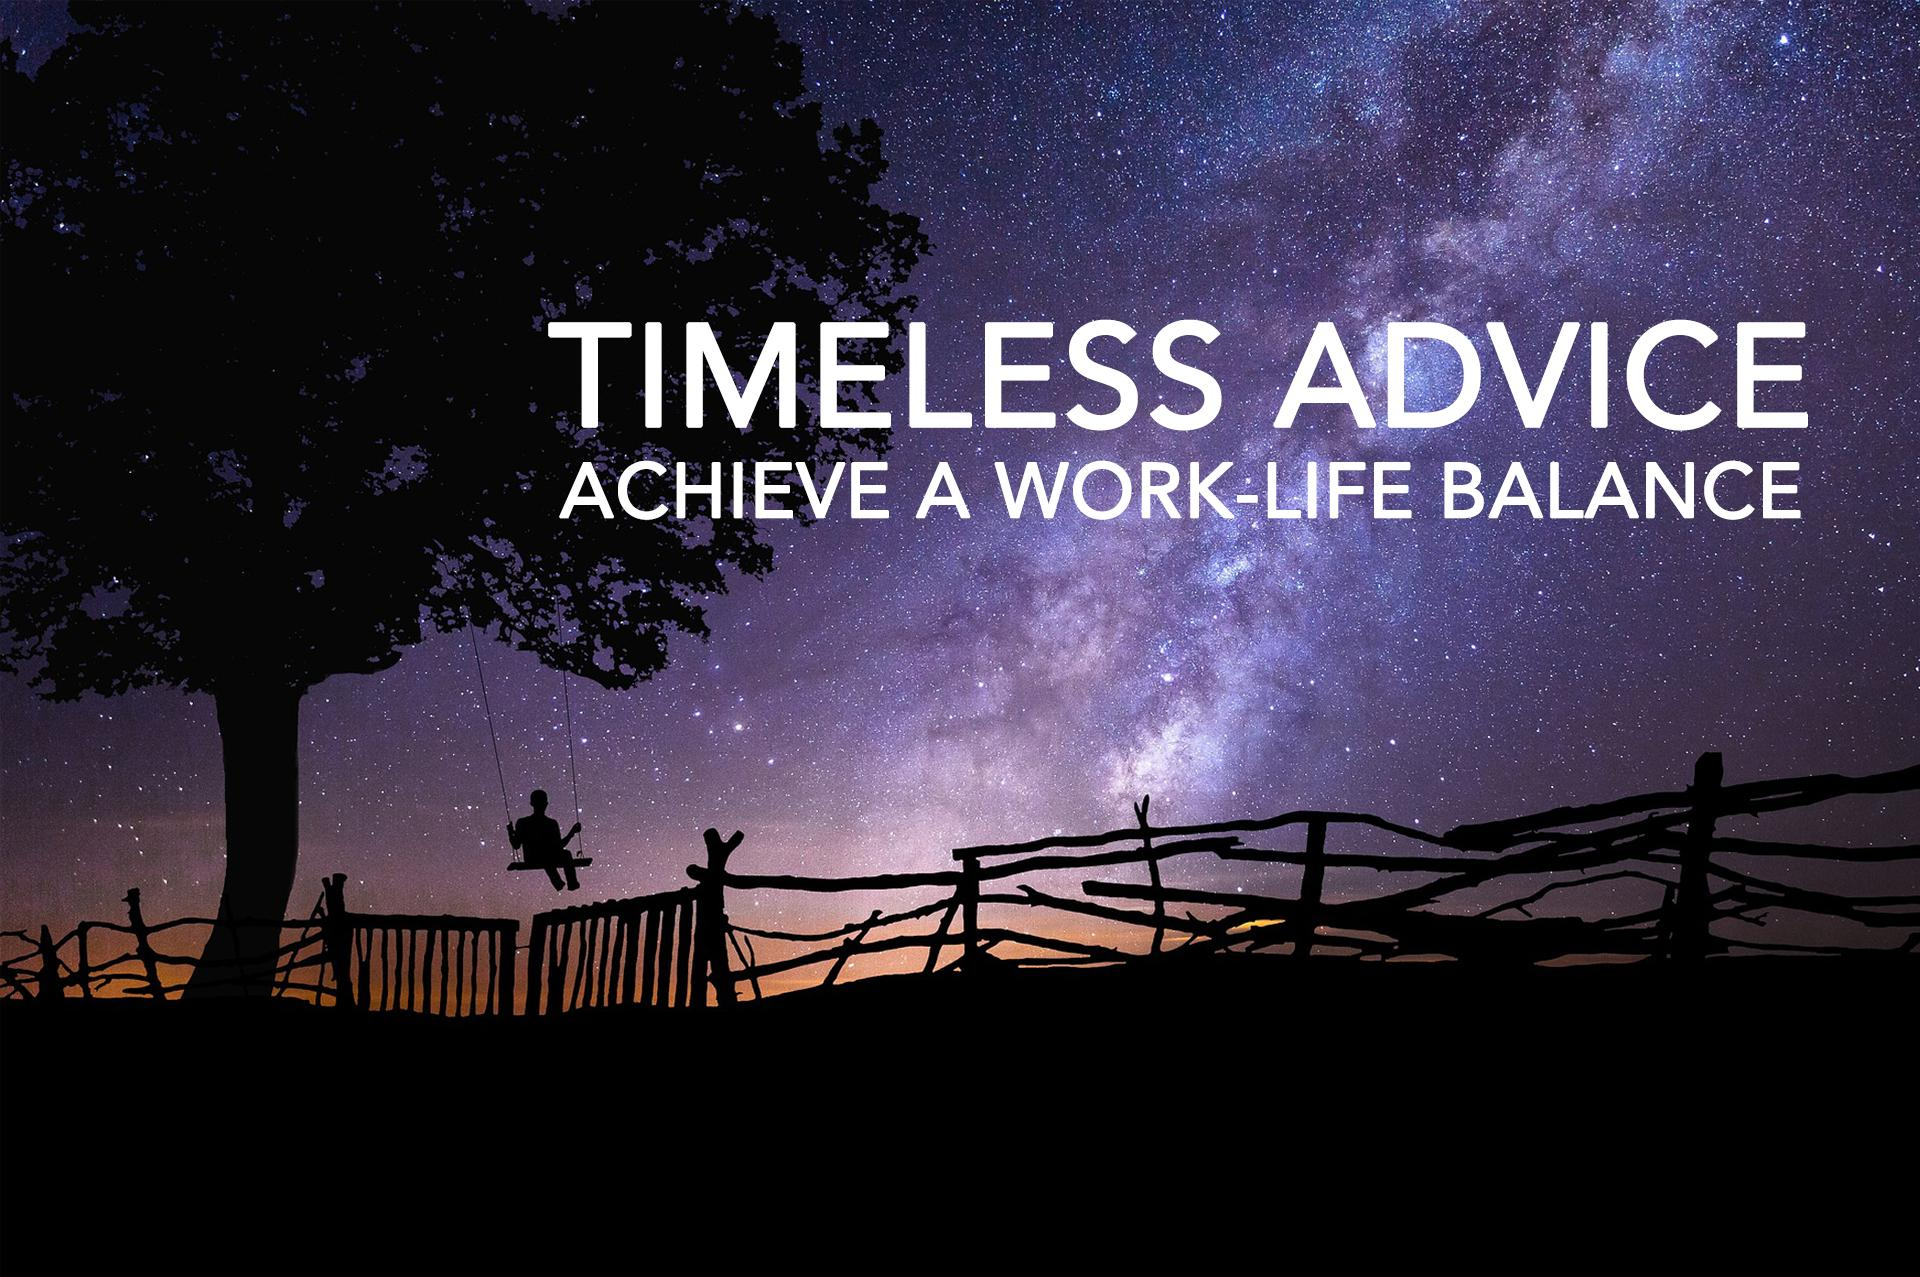 Timeless Advice About Work-Life Balance Thumbnail